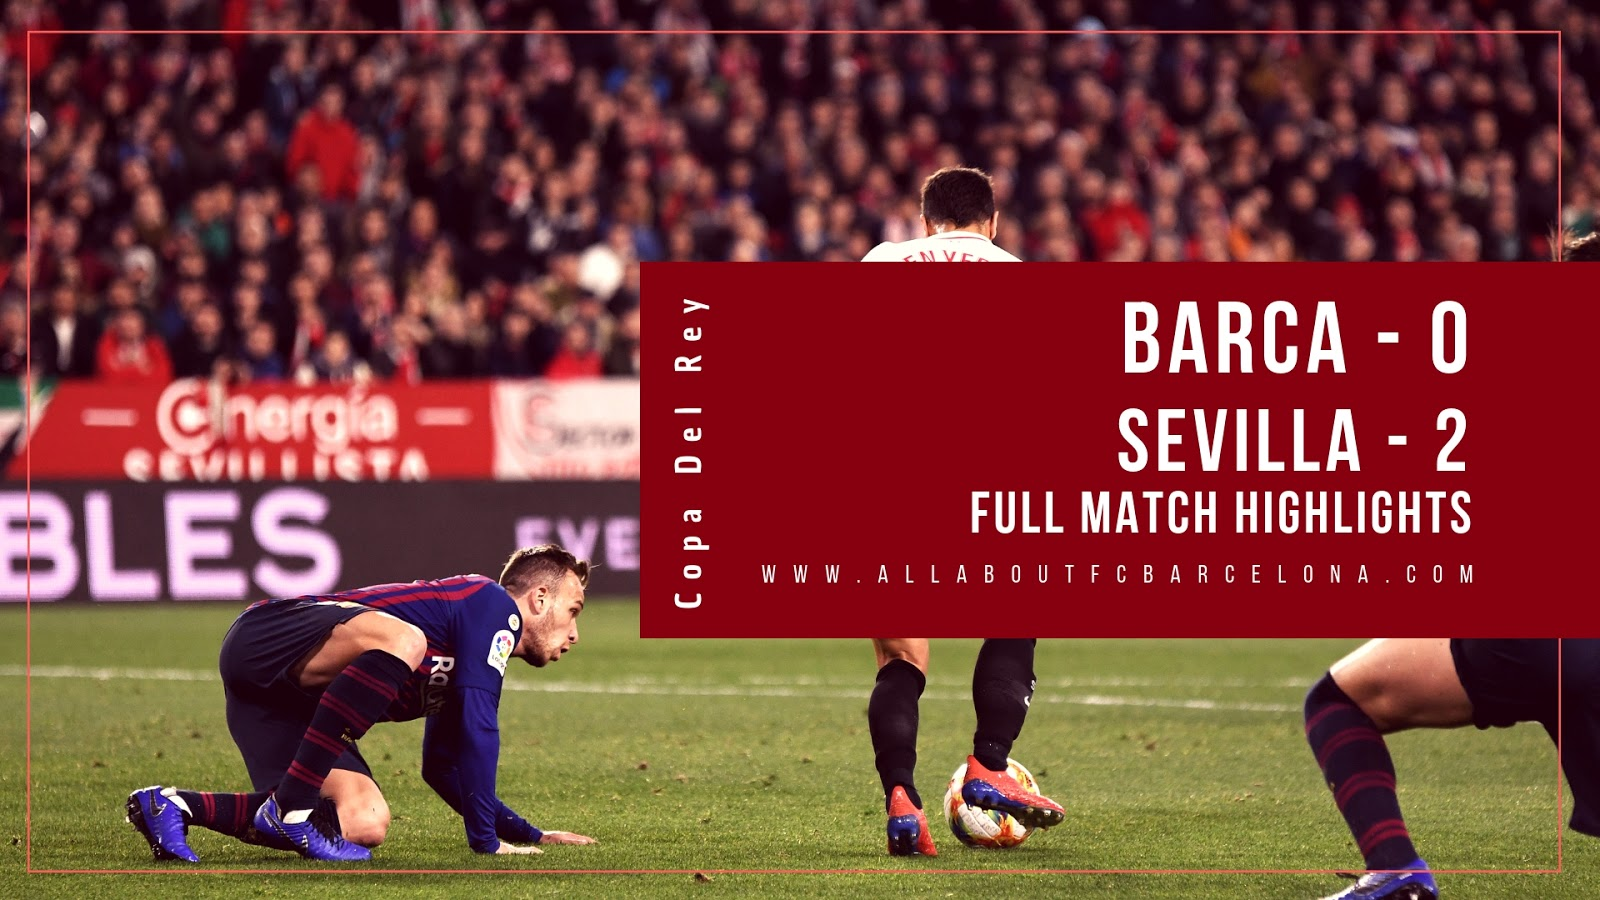 Barcelona vs Sevilla Copa Dely Match Highlights | Barca - 0, Sevilla - 2